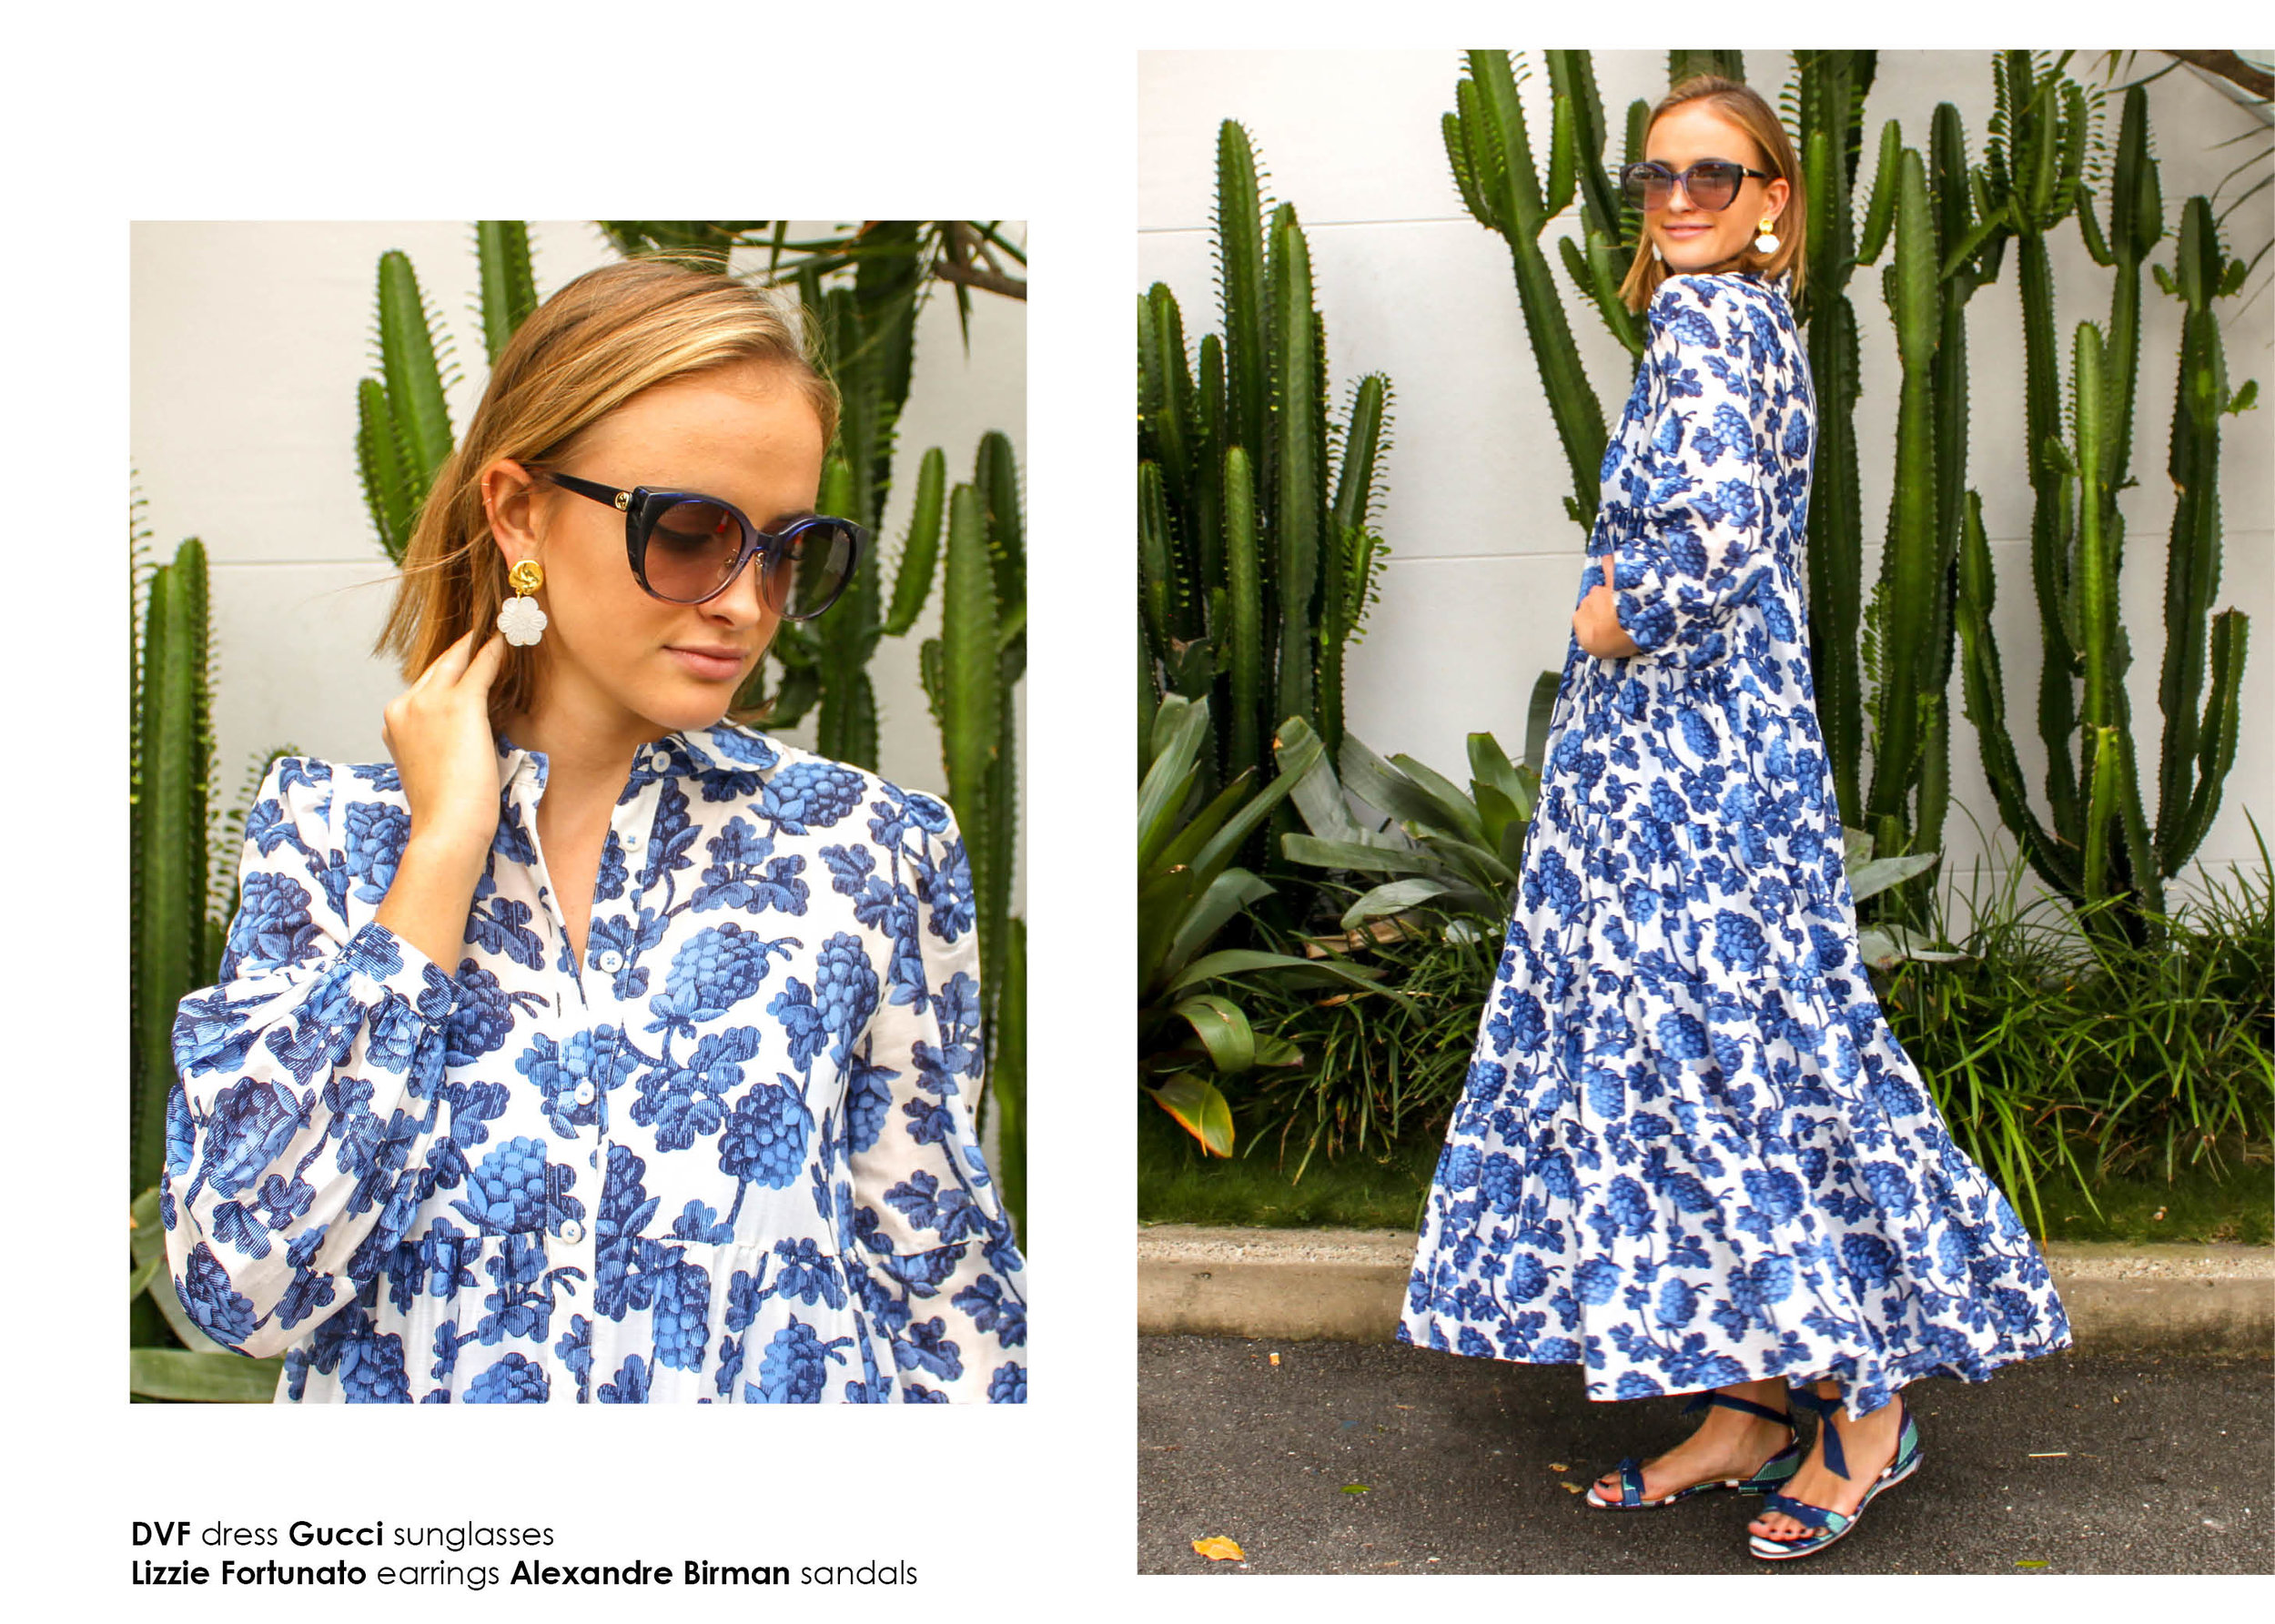 DVF-May19-newsletter-layout-2.jpg